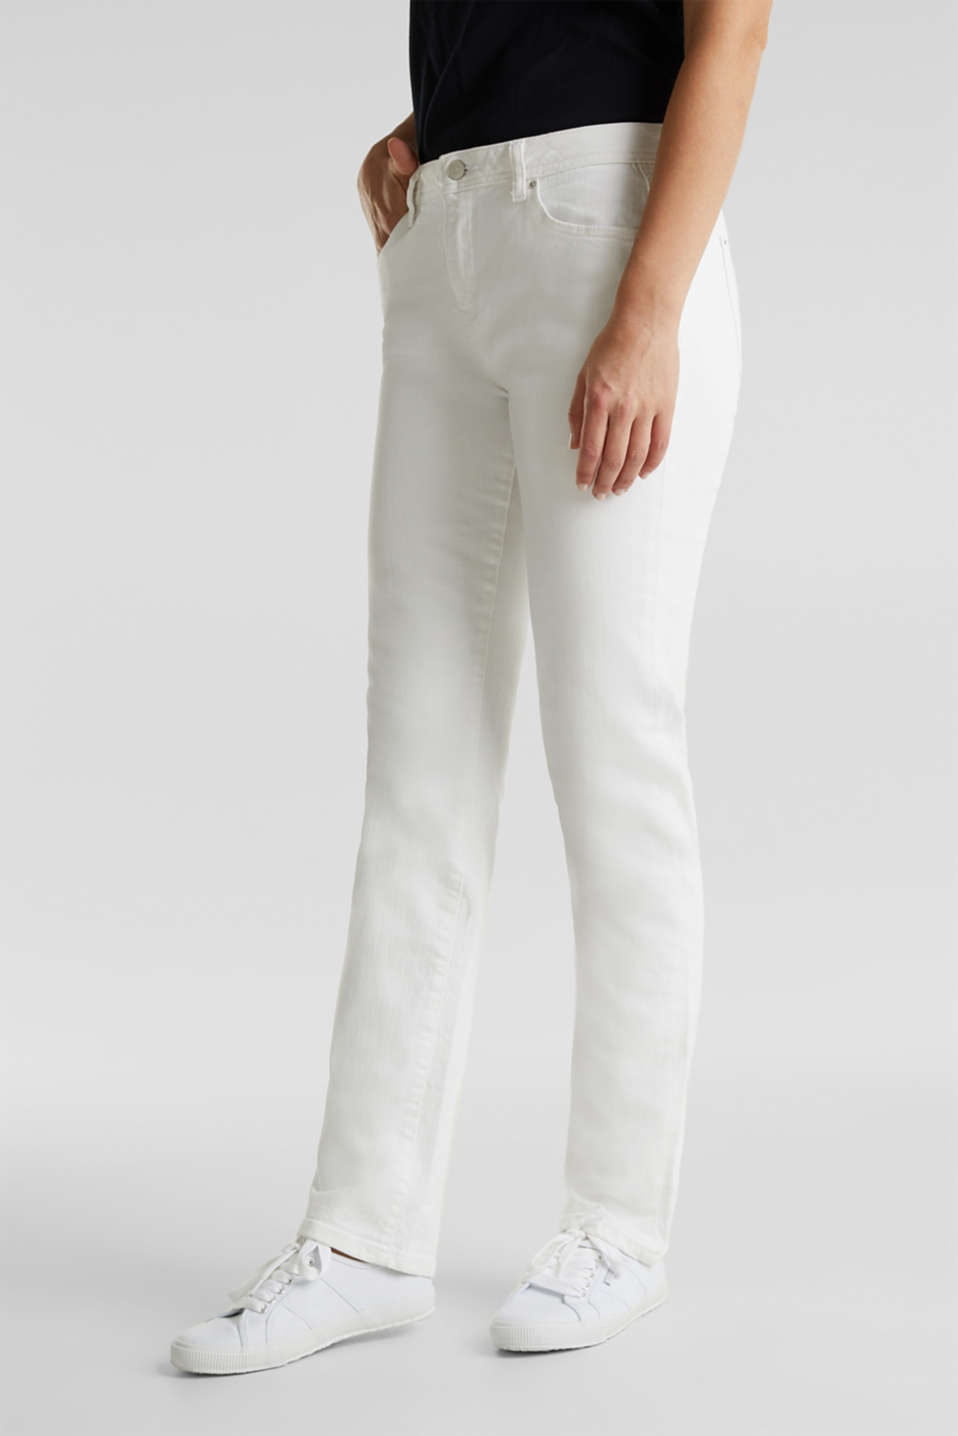 Esprit - Basic jeans with organic cotton